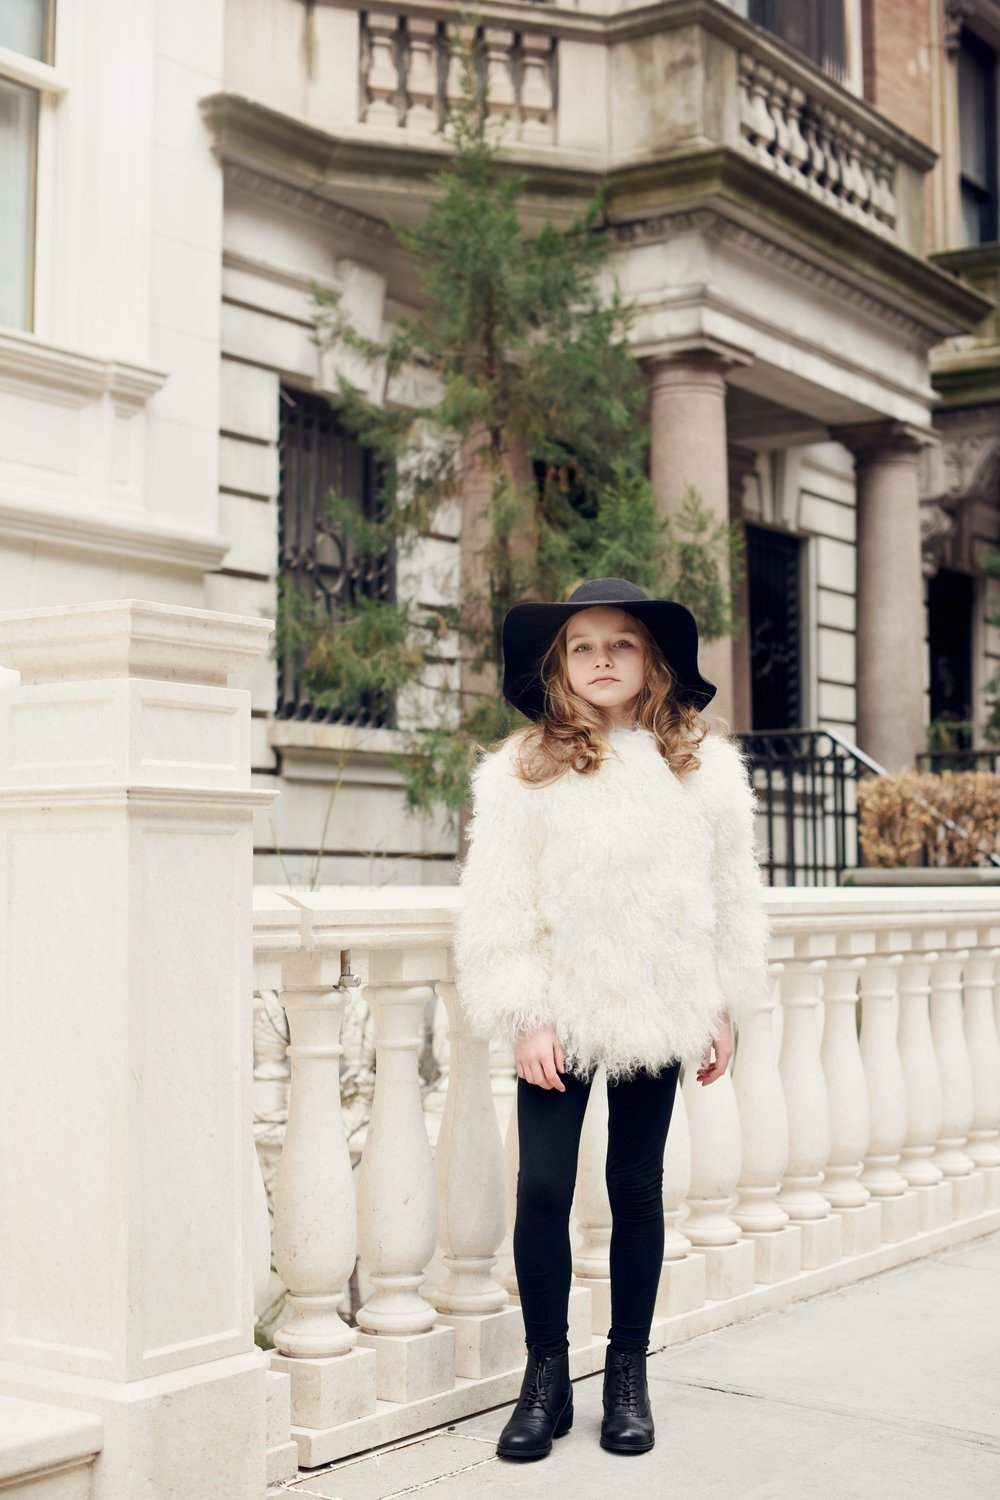 Enfant+Street+Style+by+Gina+Kim+Photography-35.jpeg